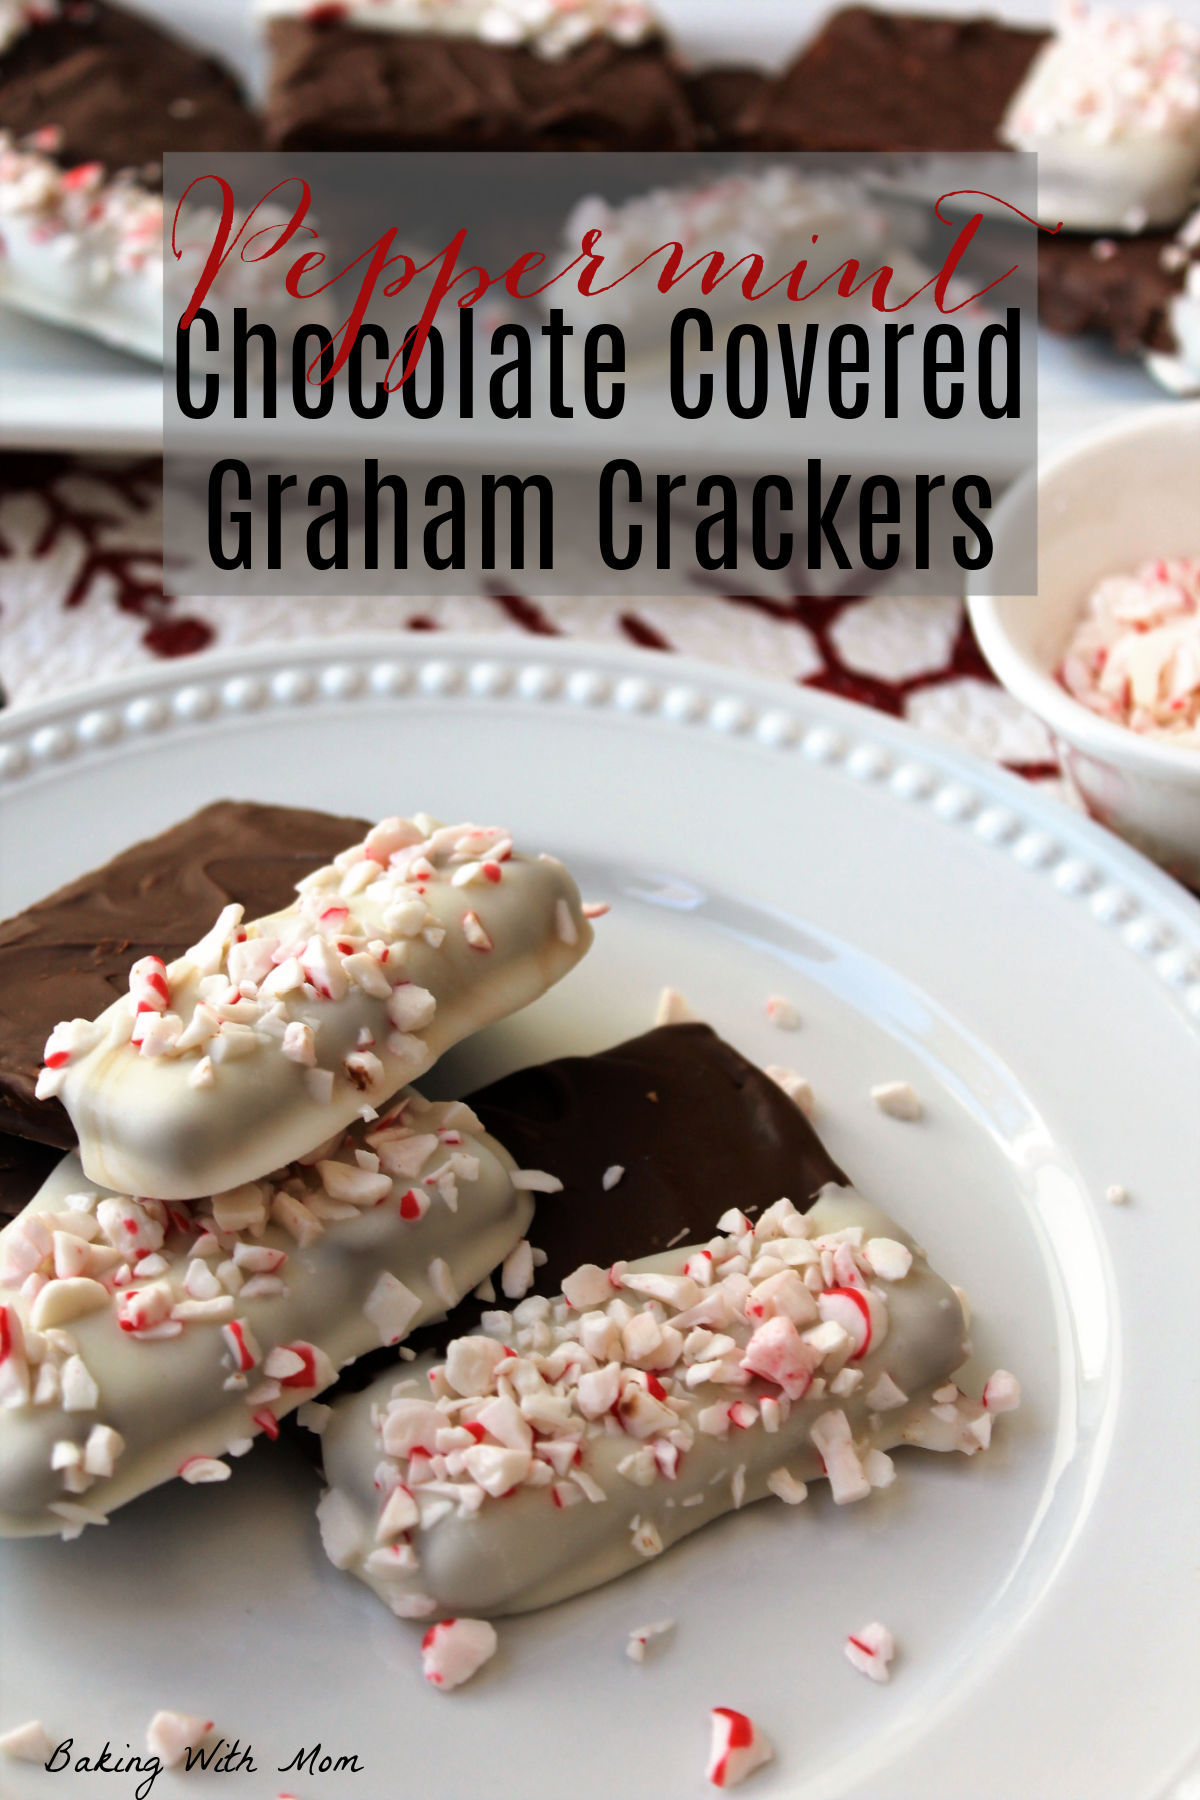 stacked in 3 chocolate covered graham crackers with mint sprinkles